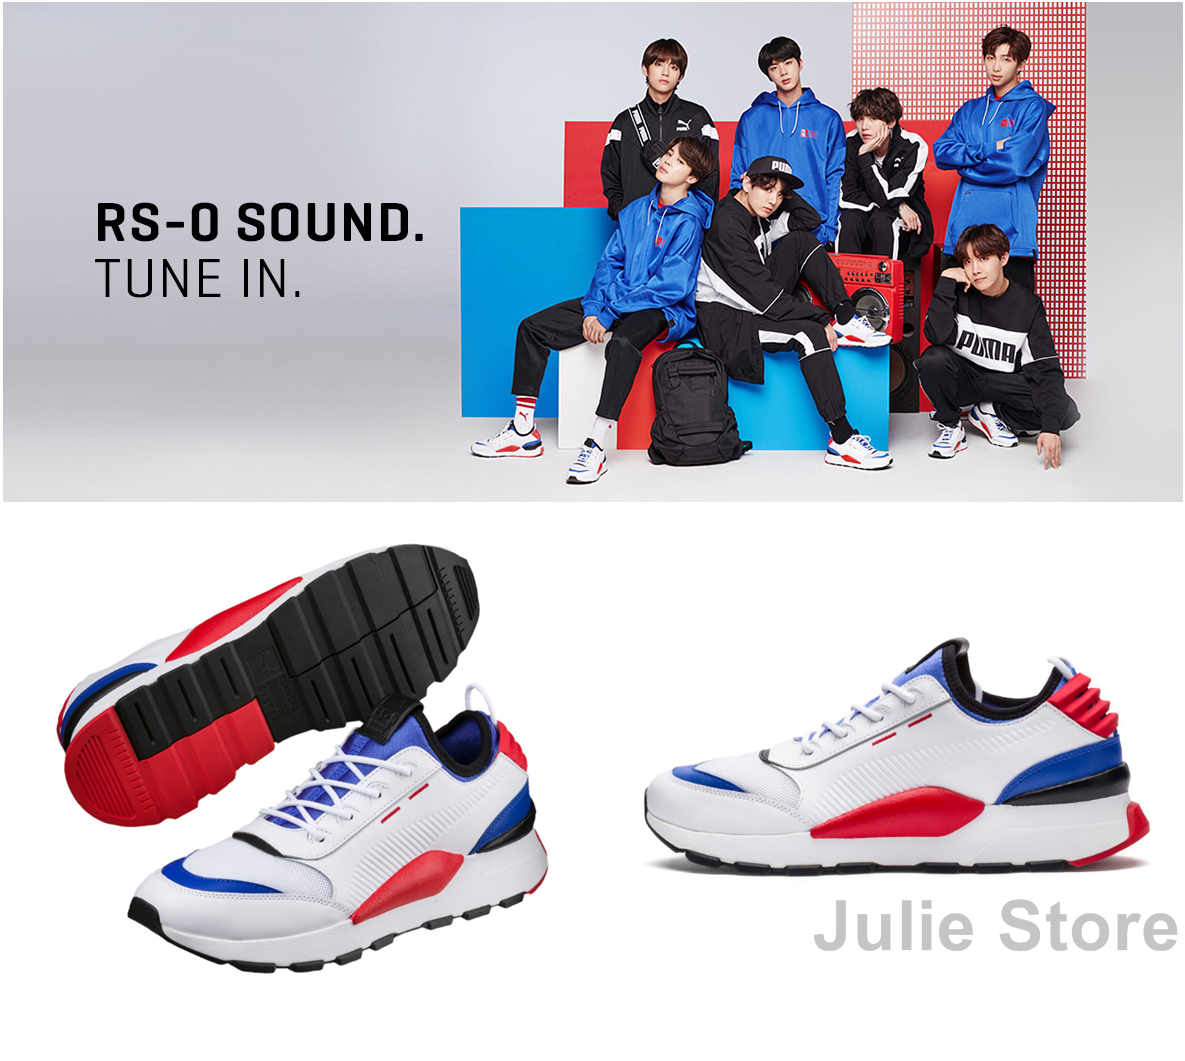 BTS PUMA RS 0 Sound 366890 New Official Collaboration 3 Farbes RS-0 Sound RunBTS